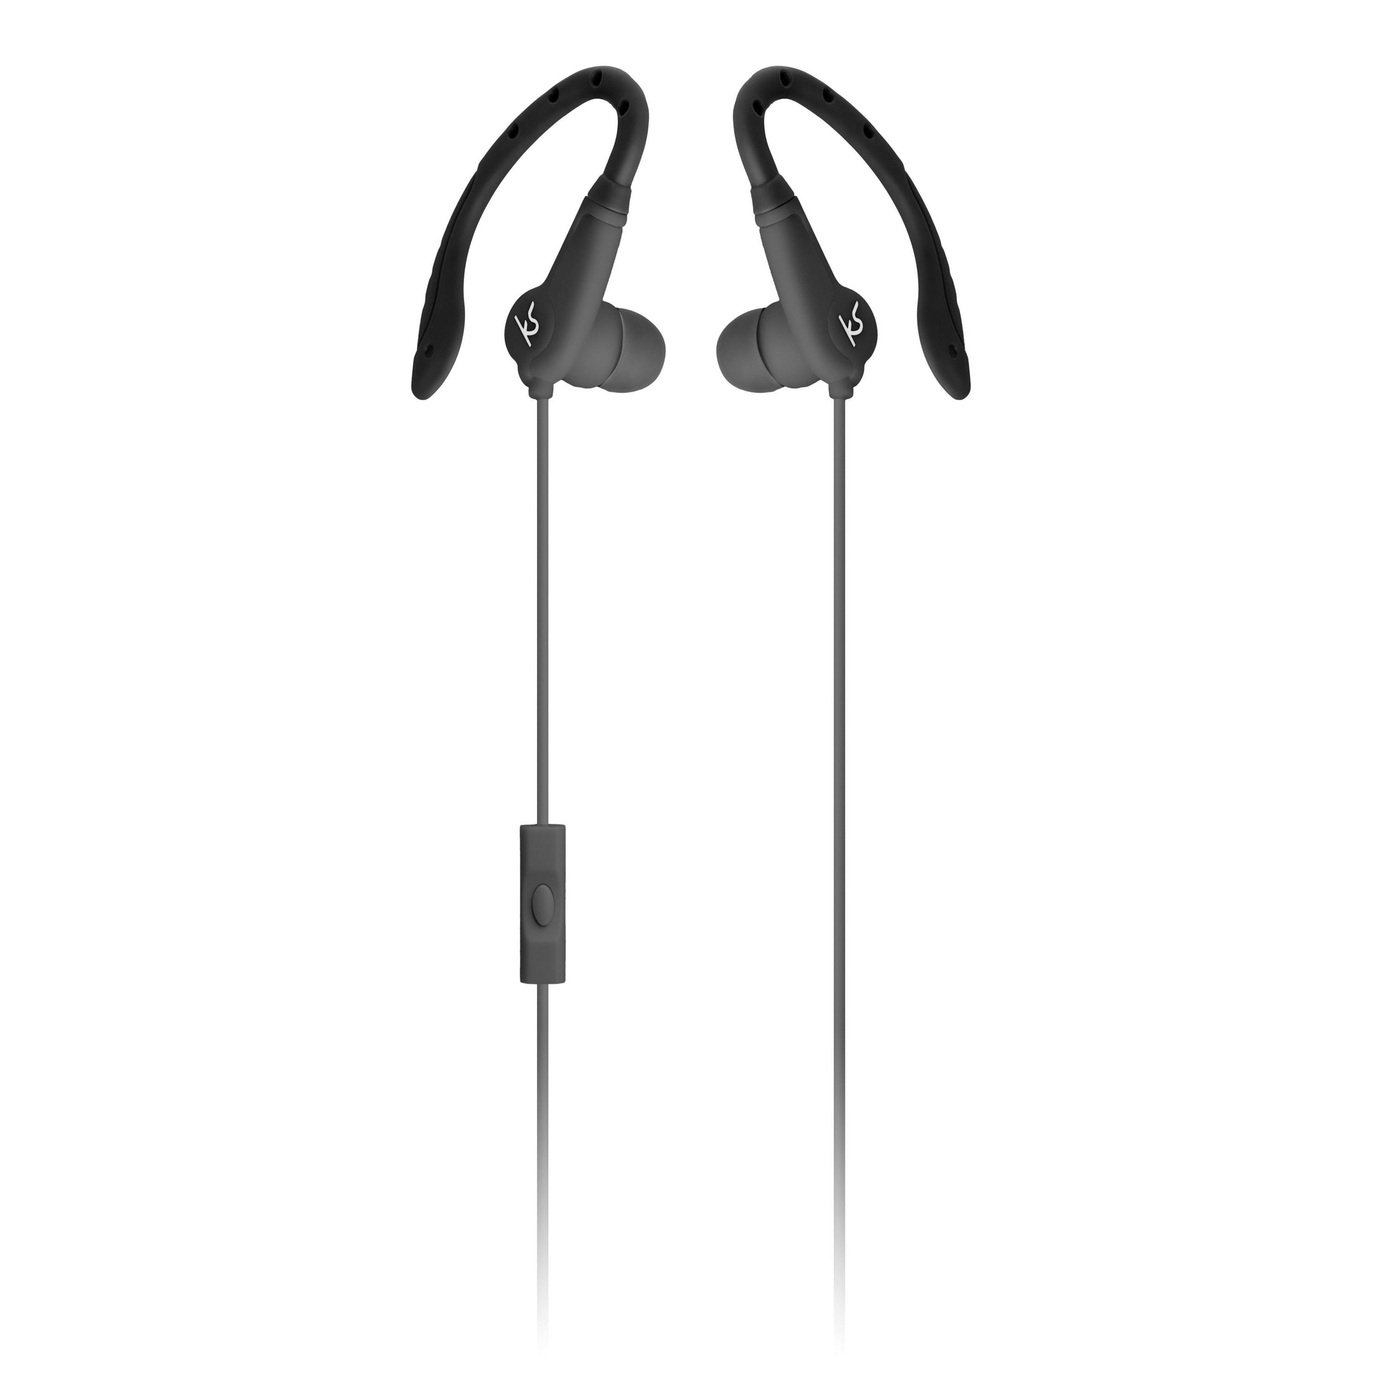 Kitsound Exert Sport In-Ear Headphones - Black